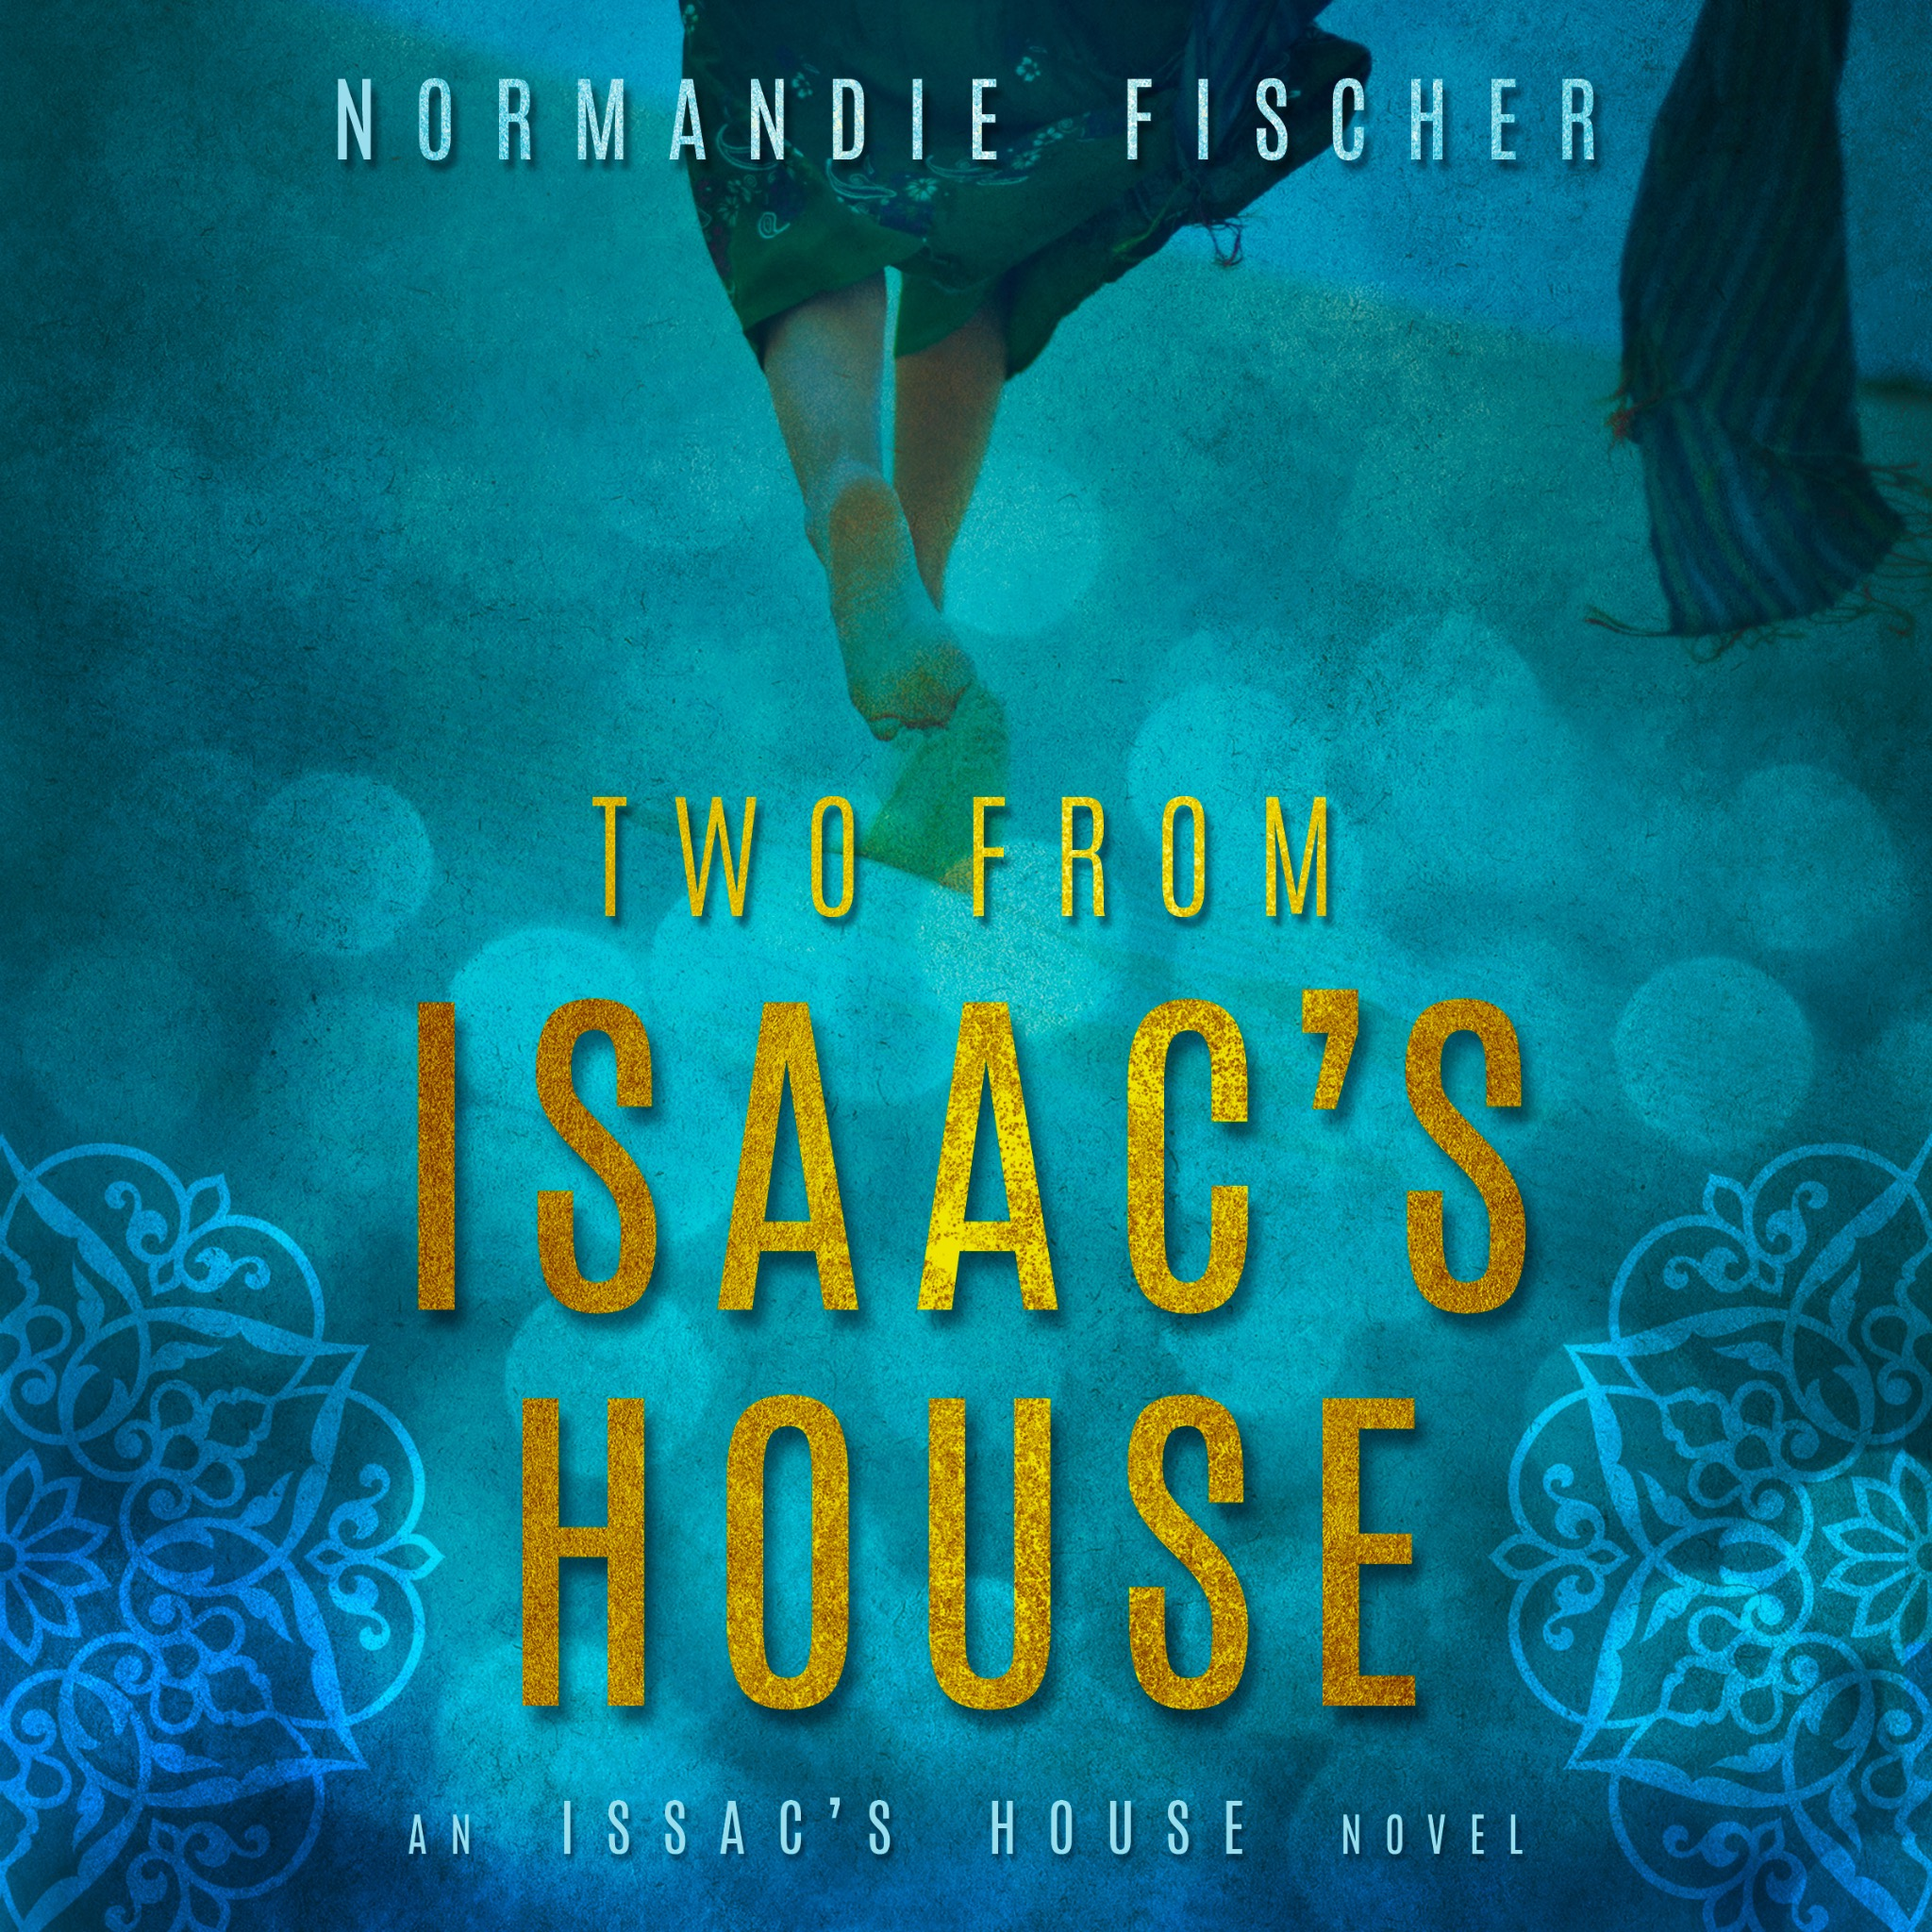 Audiobook, Two from Isaac's House, Parts I & II